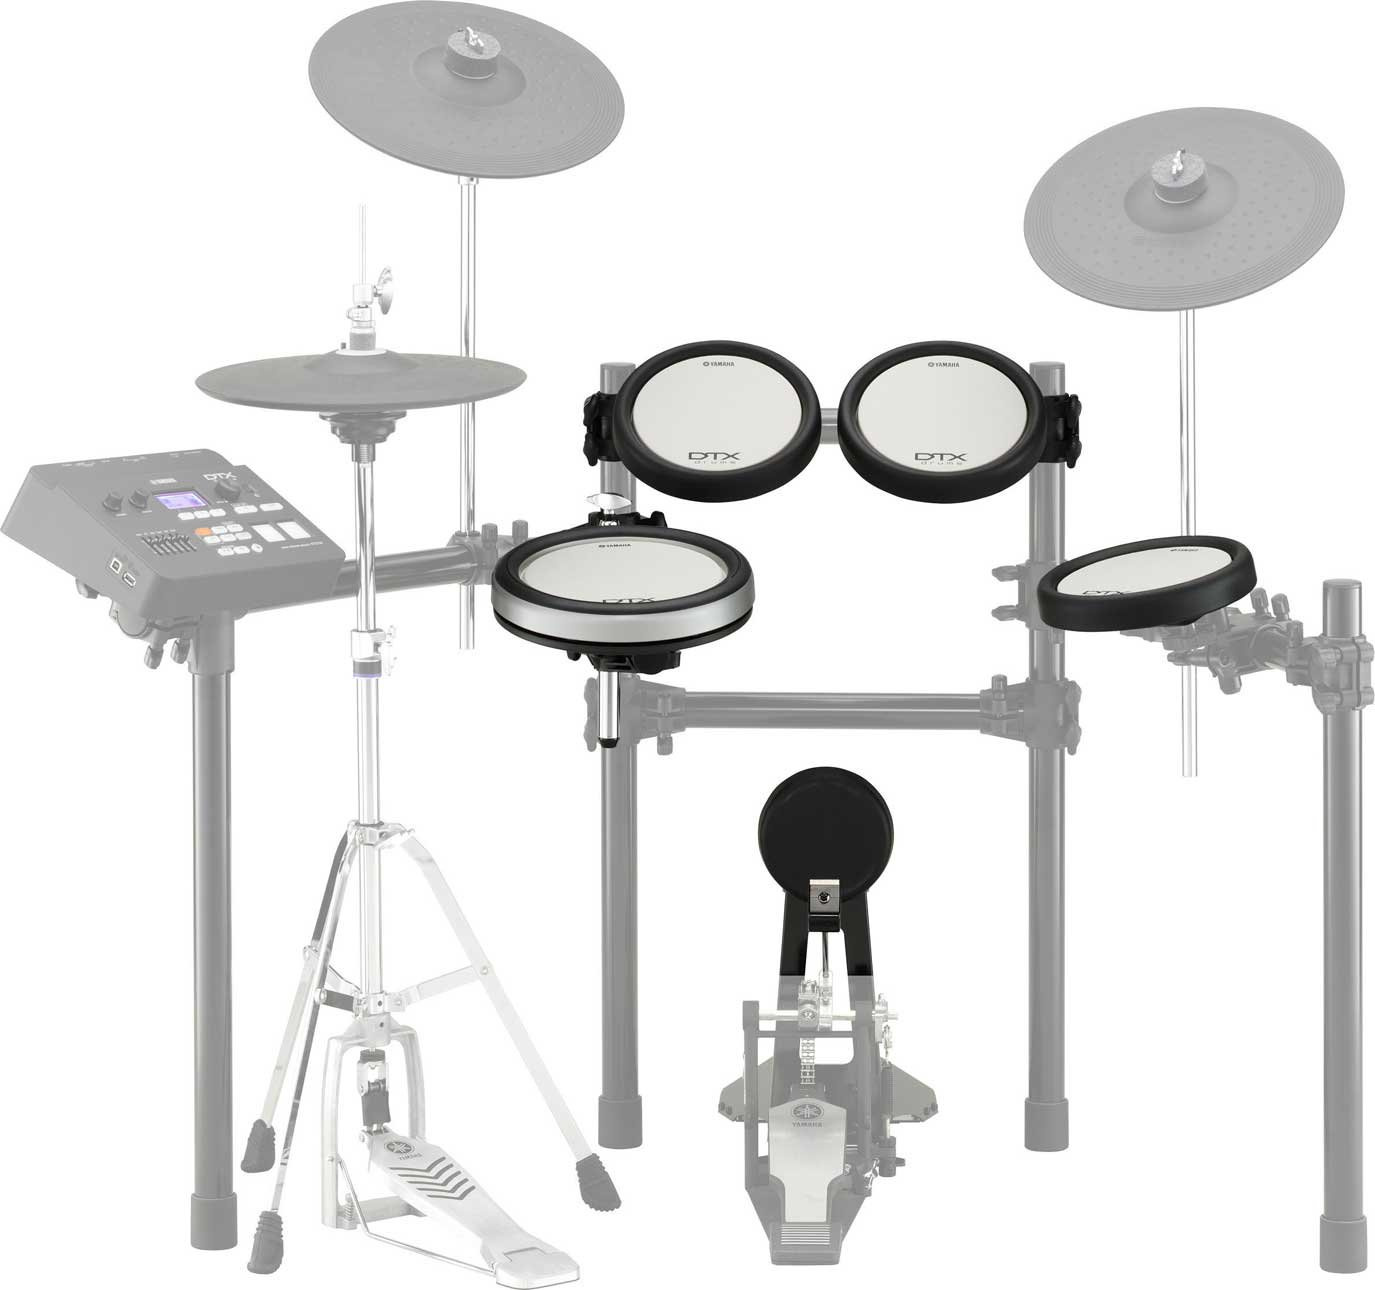 Drum Pad Set For DTX700K Electronic Drum Kit